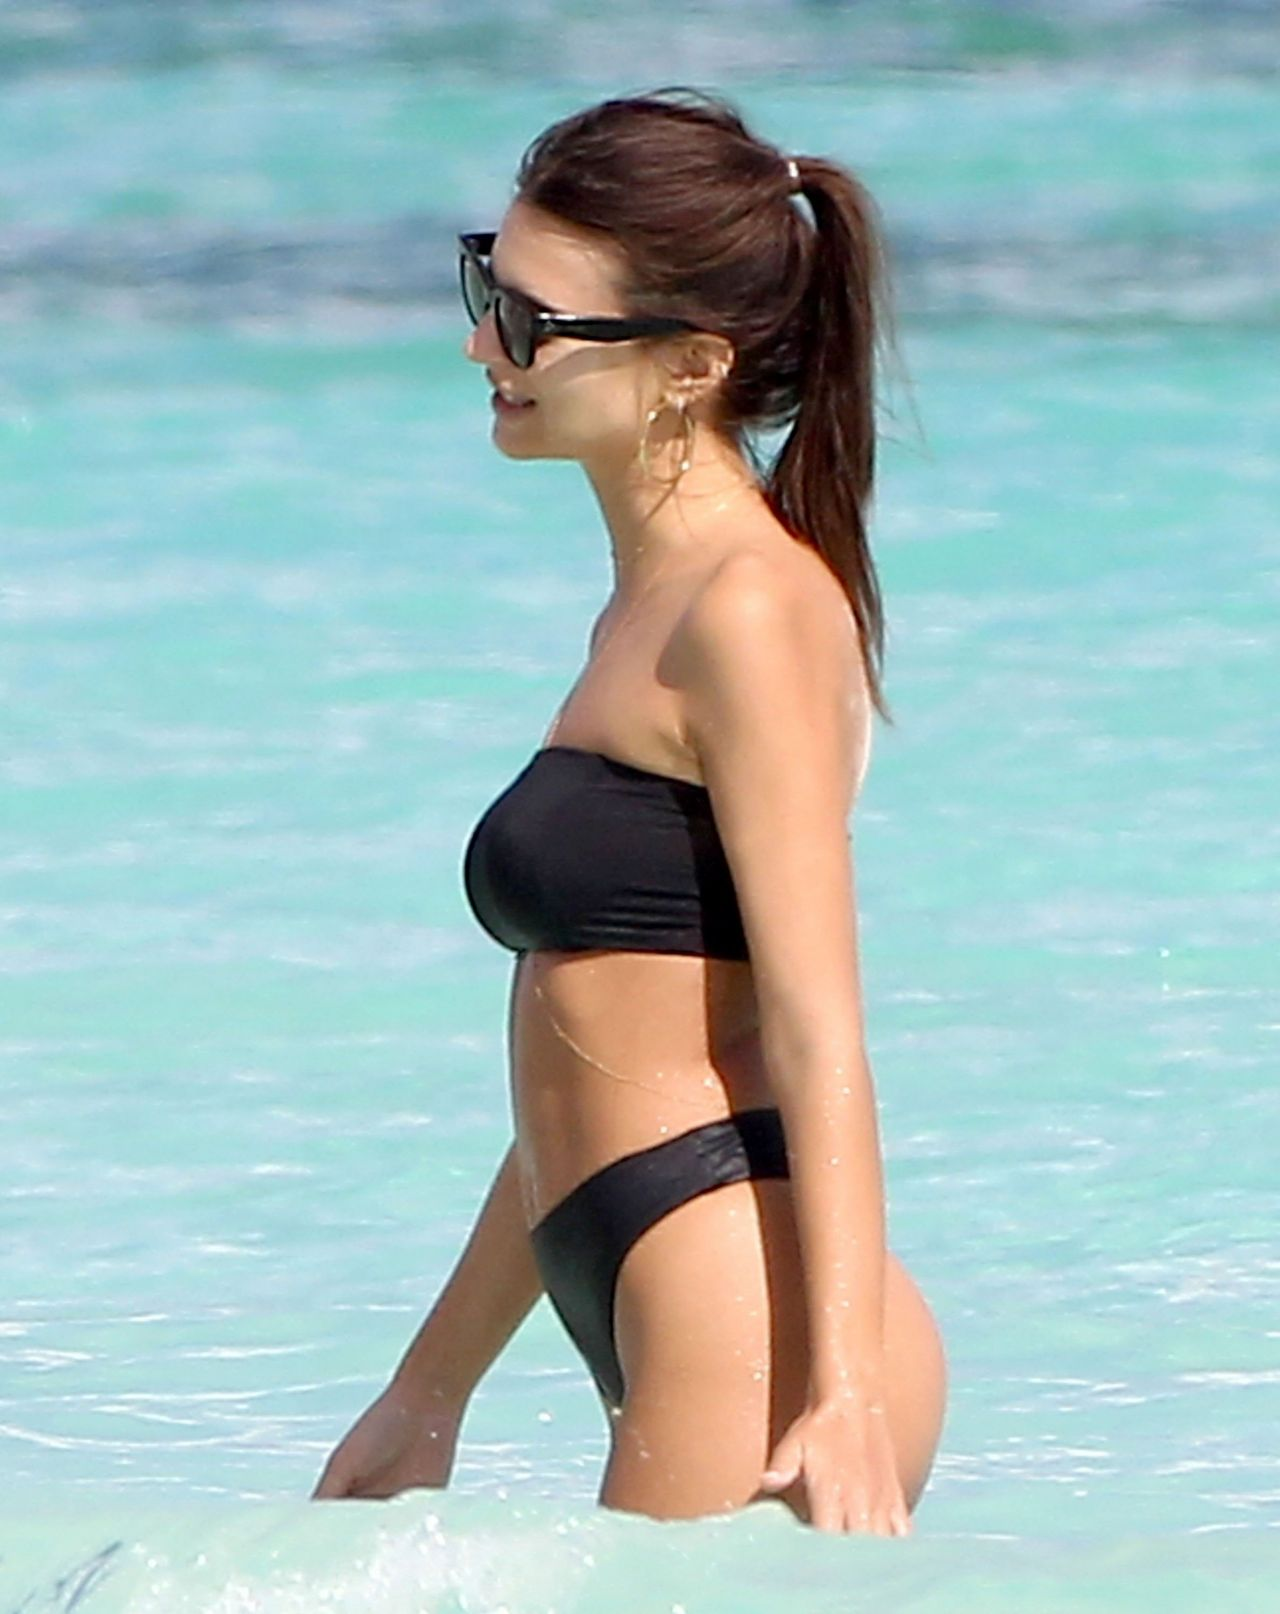 b1c88f28b83 Emily Ratajkowski Hot in Black Bikini – Beach In Cancun, Mexico 11/22/ 2016